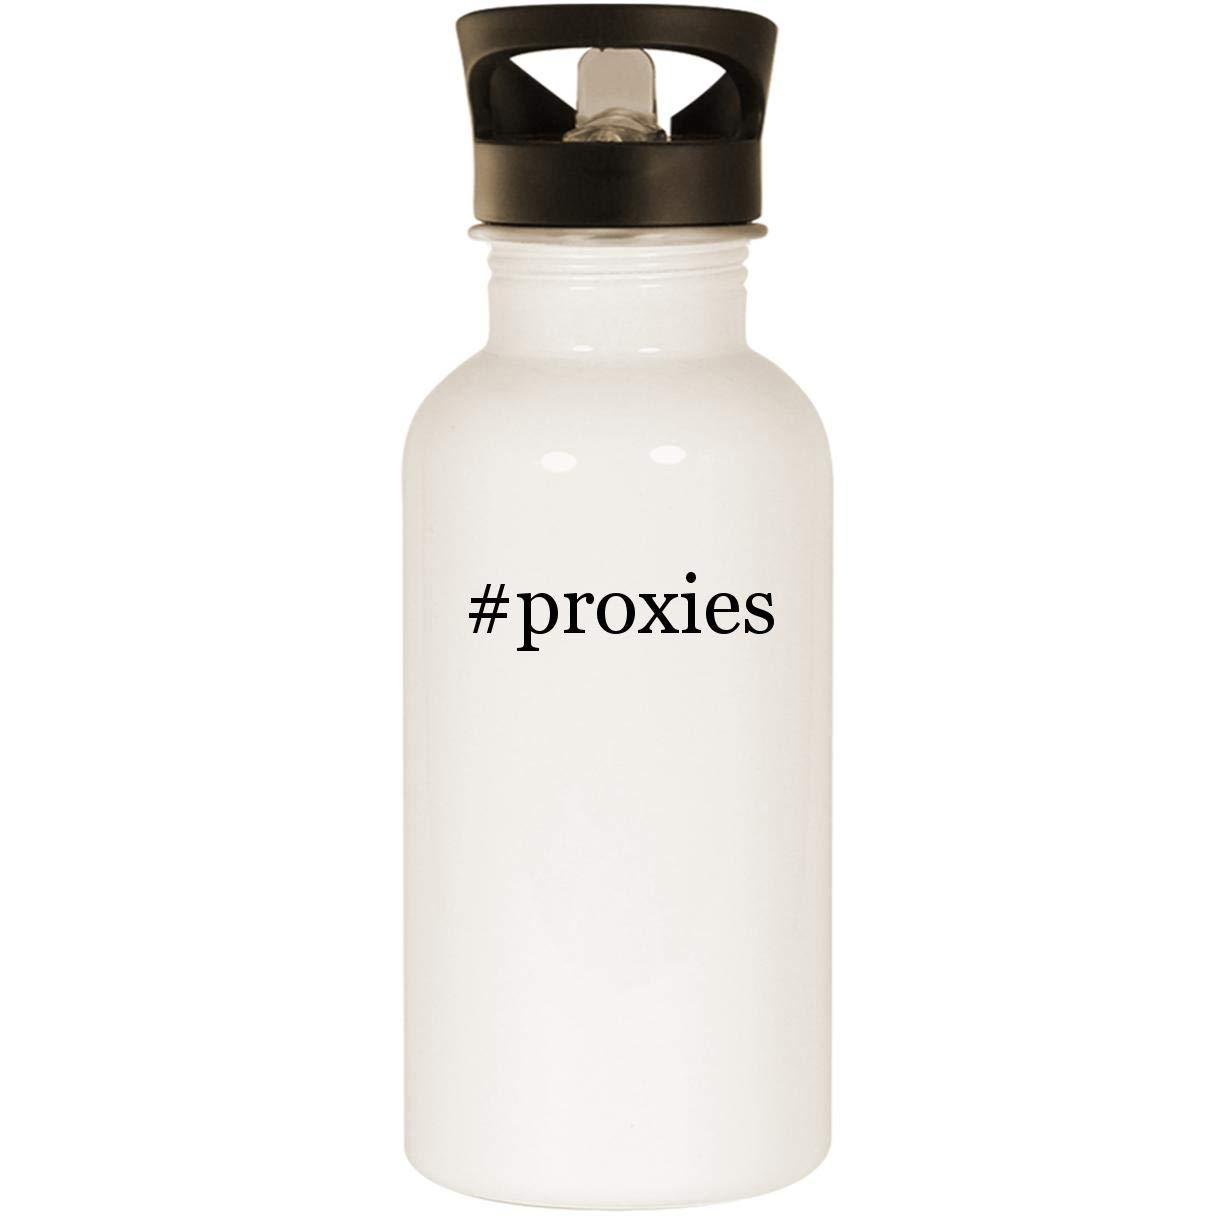 Amazon com: #proxies - Stainless Steel Hashtag 20oz Road Ready Water